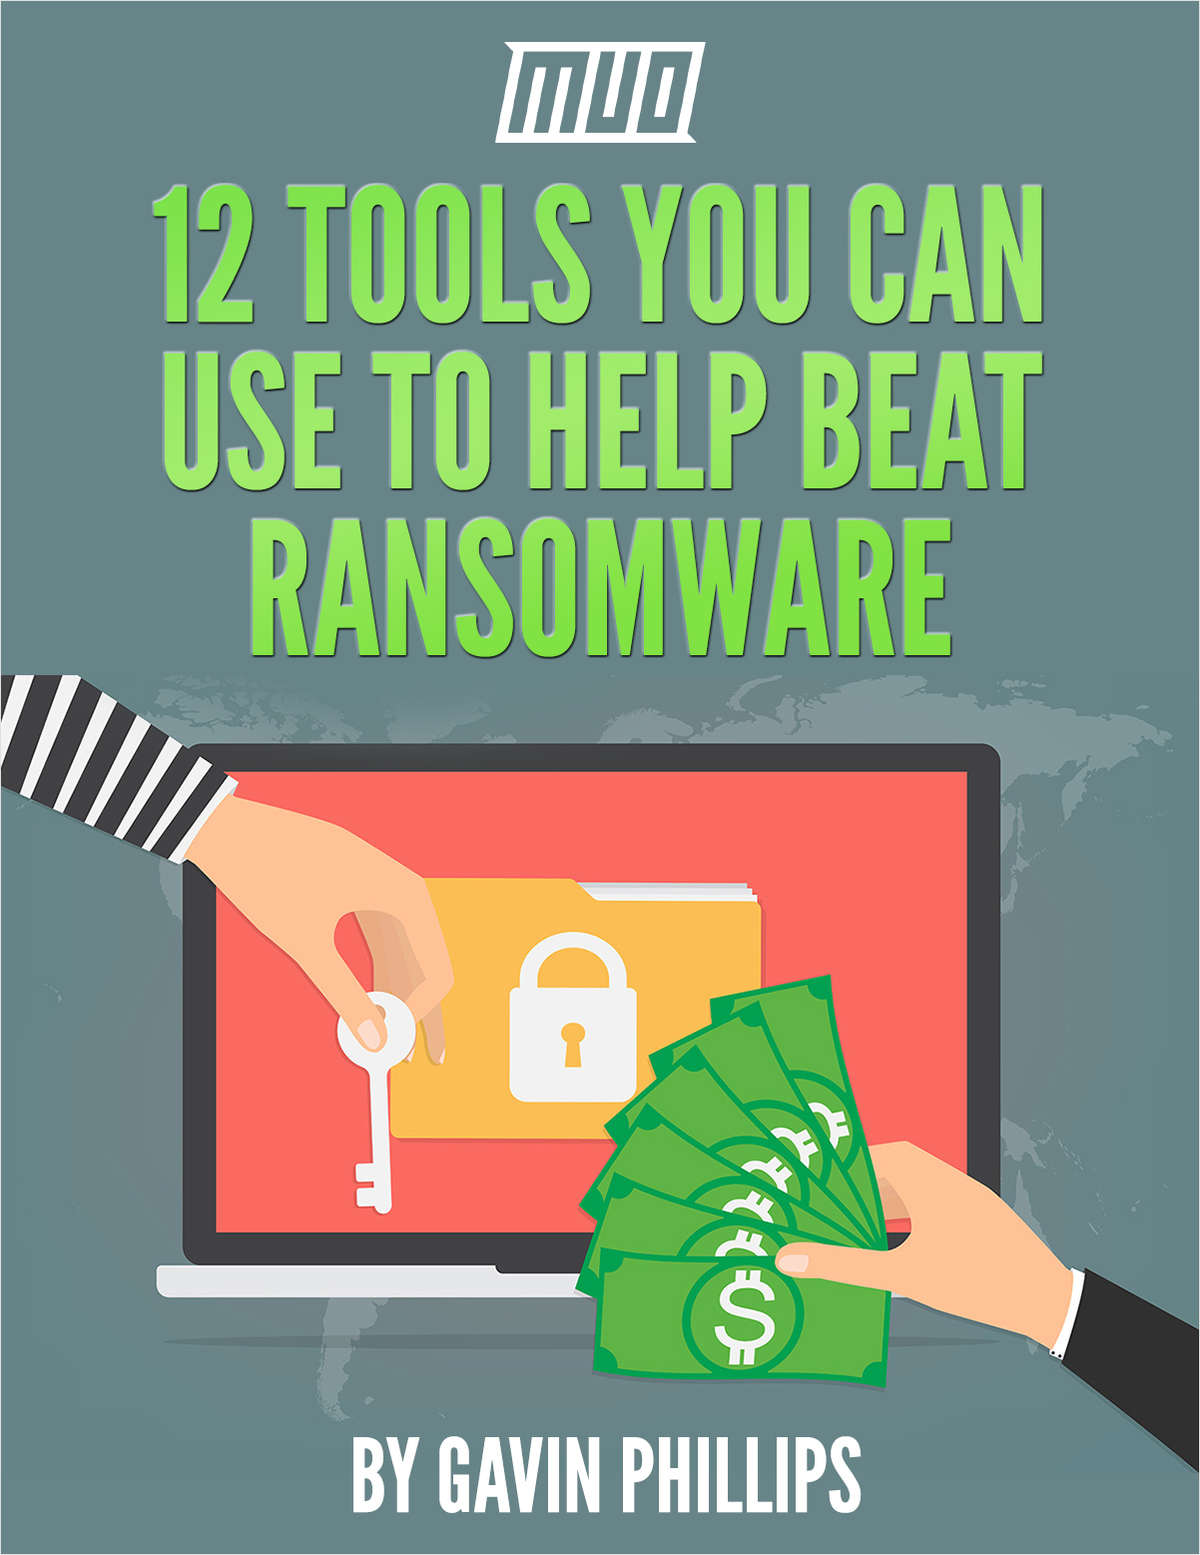 12 Tools You Can Use to Help Beat Ransomware